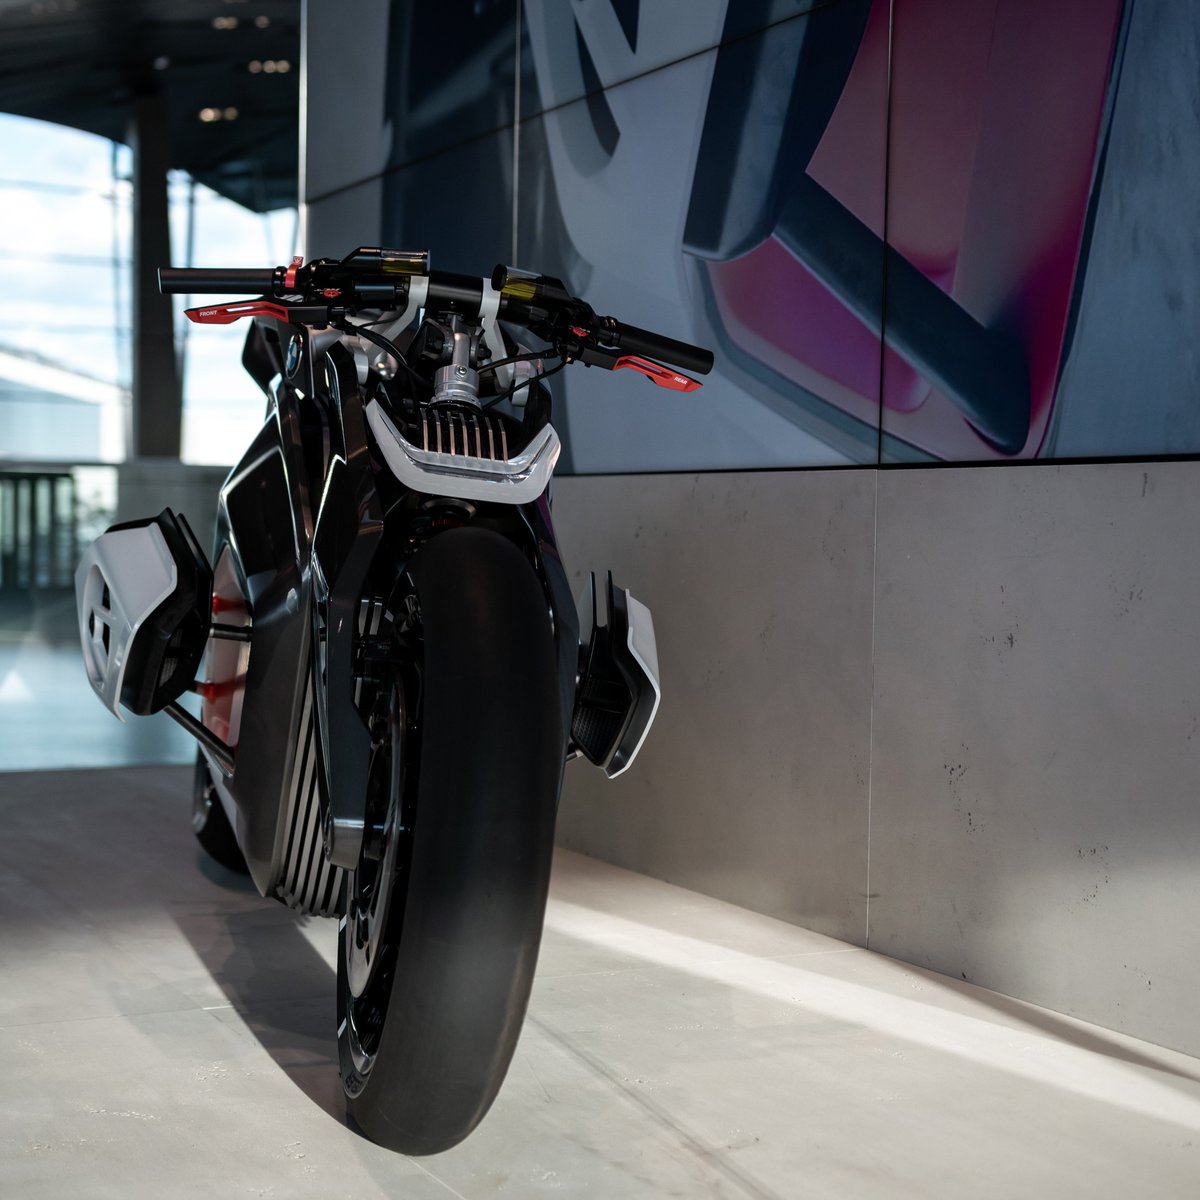 Ever wondered how the bikes of tomorrow might look? Discover the innovative and visionary BMW Vision DC Roadster at BMW Welt, and take a ride into the future. @BMWMotorrad #BMWWelt #everysecondjoy